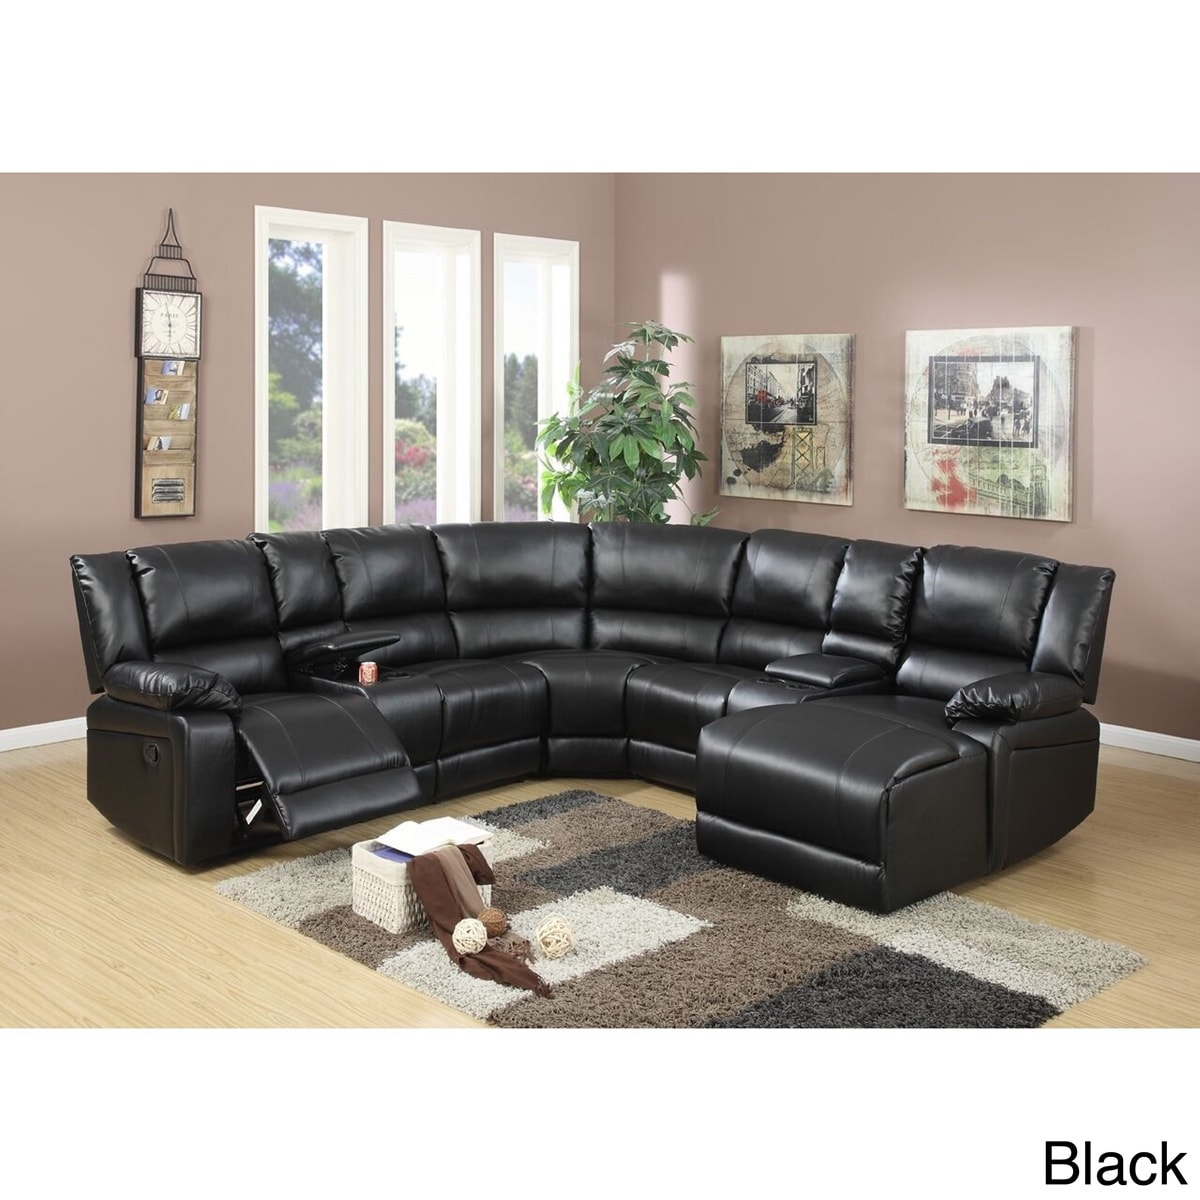 Segudet Bonded Leather Motion Sectional Sofa Free Shipping Today 12199550